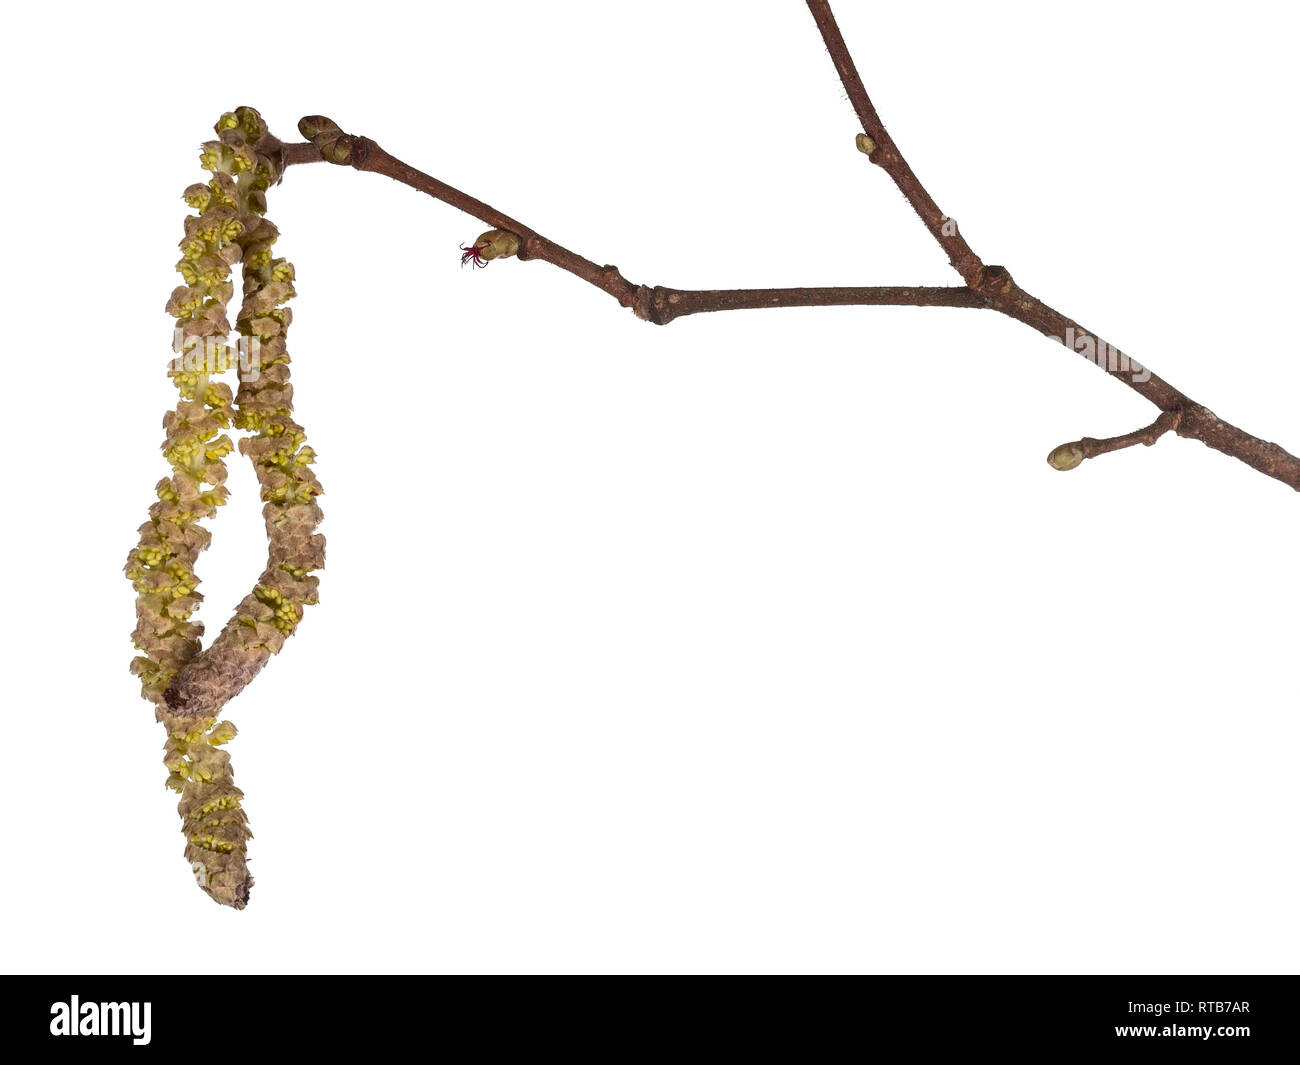 Common hazel tree twig with male and female catkins isolated on white background. Corylus avellana, monoecious plant. - Stock Image